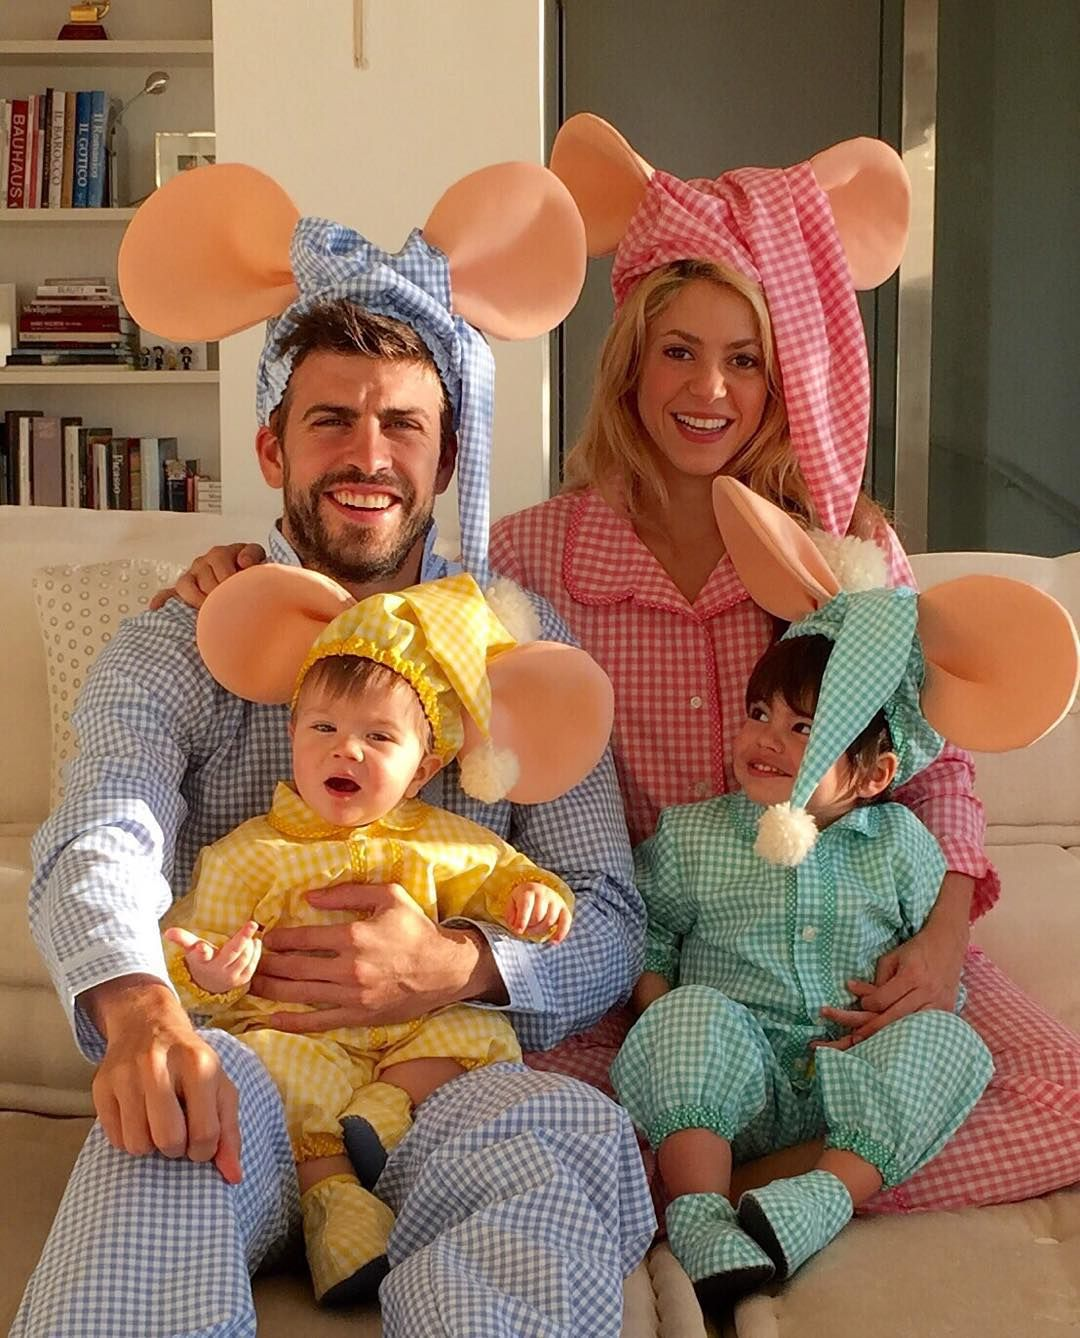 27 Of Shakira And Gerard Pique S Family Photos With Their Kids